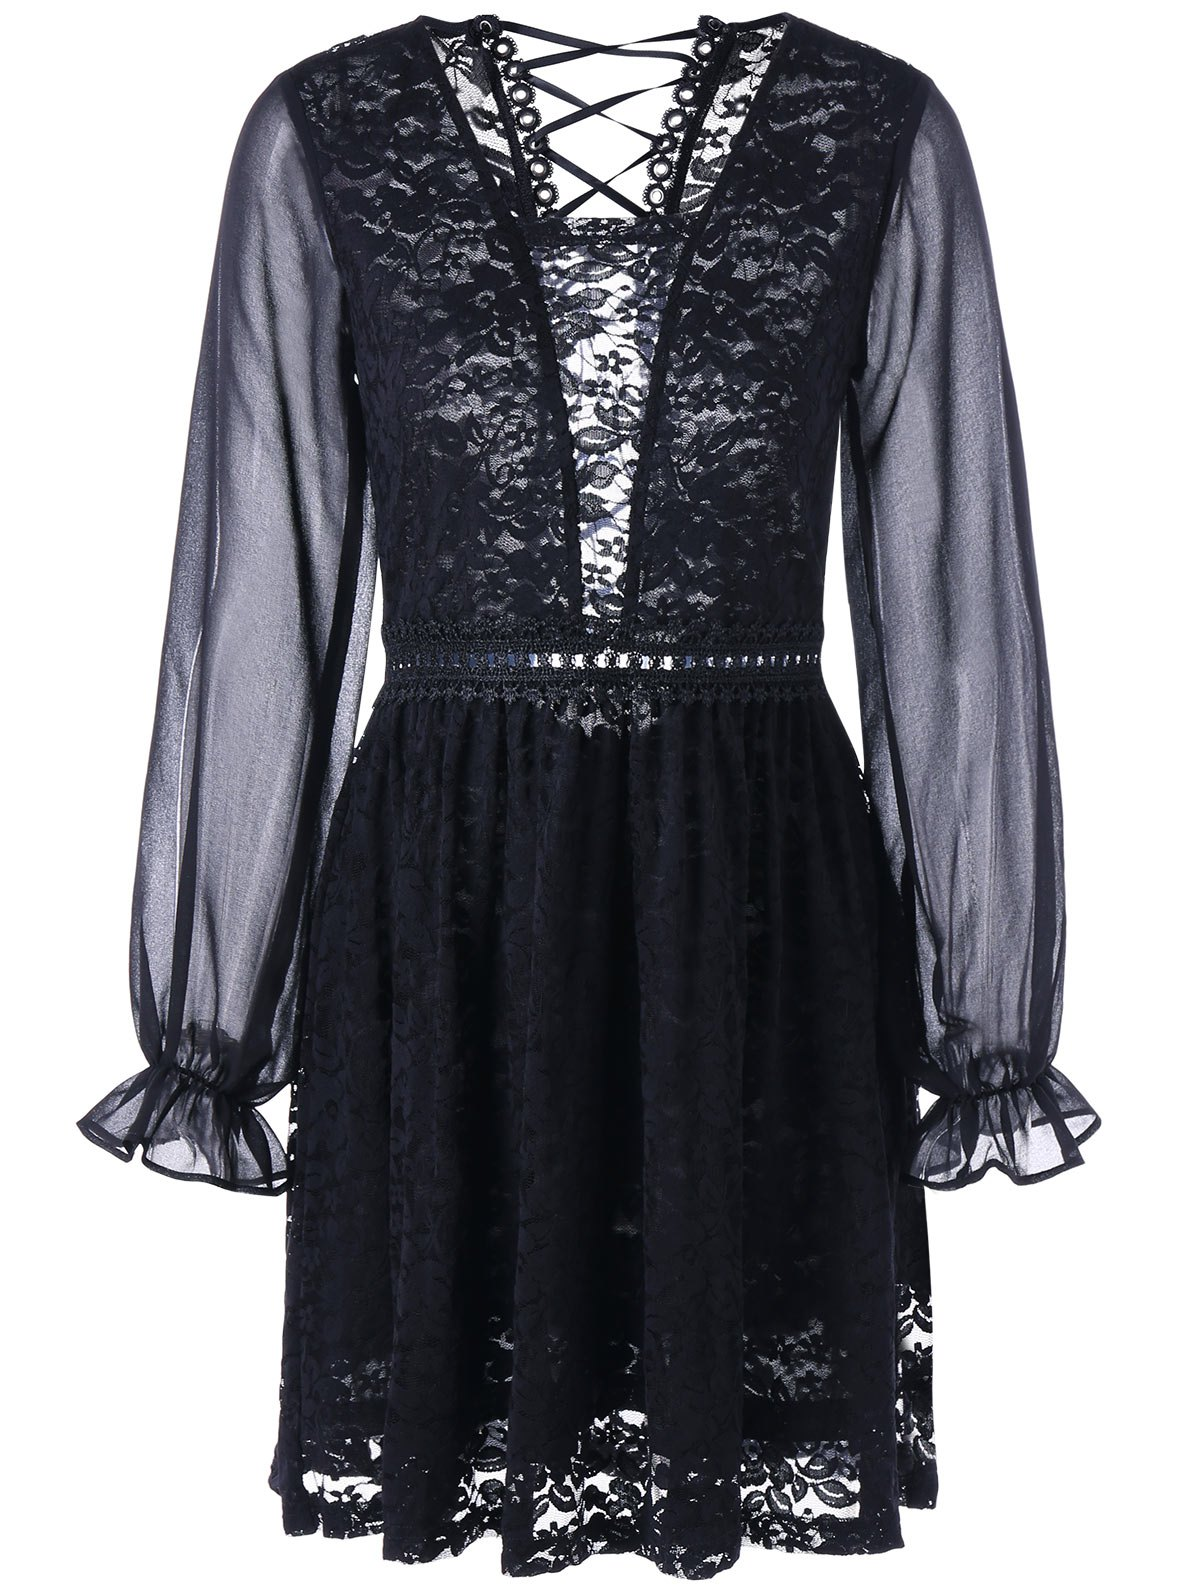 Back Tie Up Long Sleeve Sheer Lace Dress - BLACK L